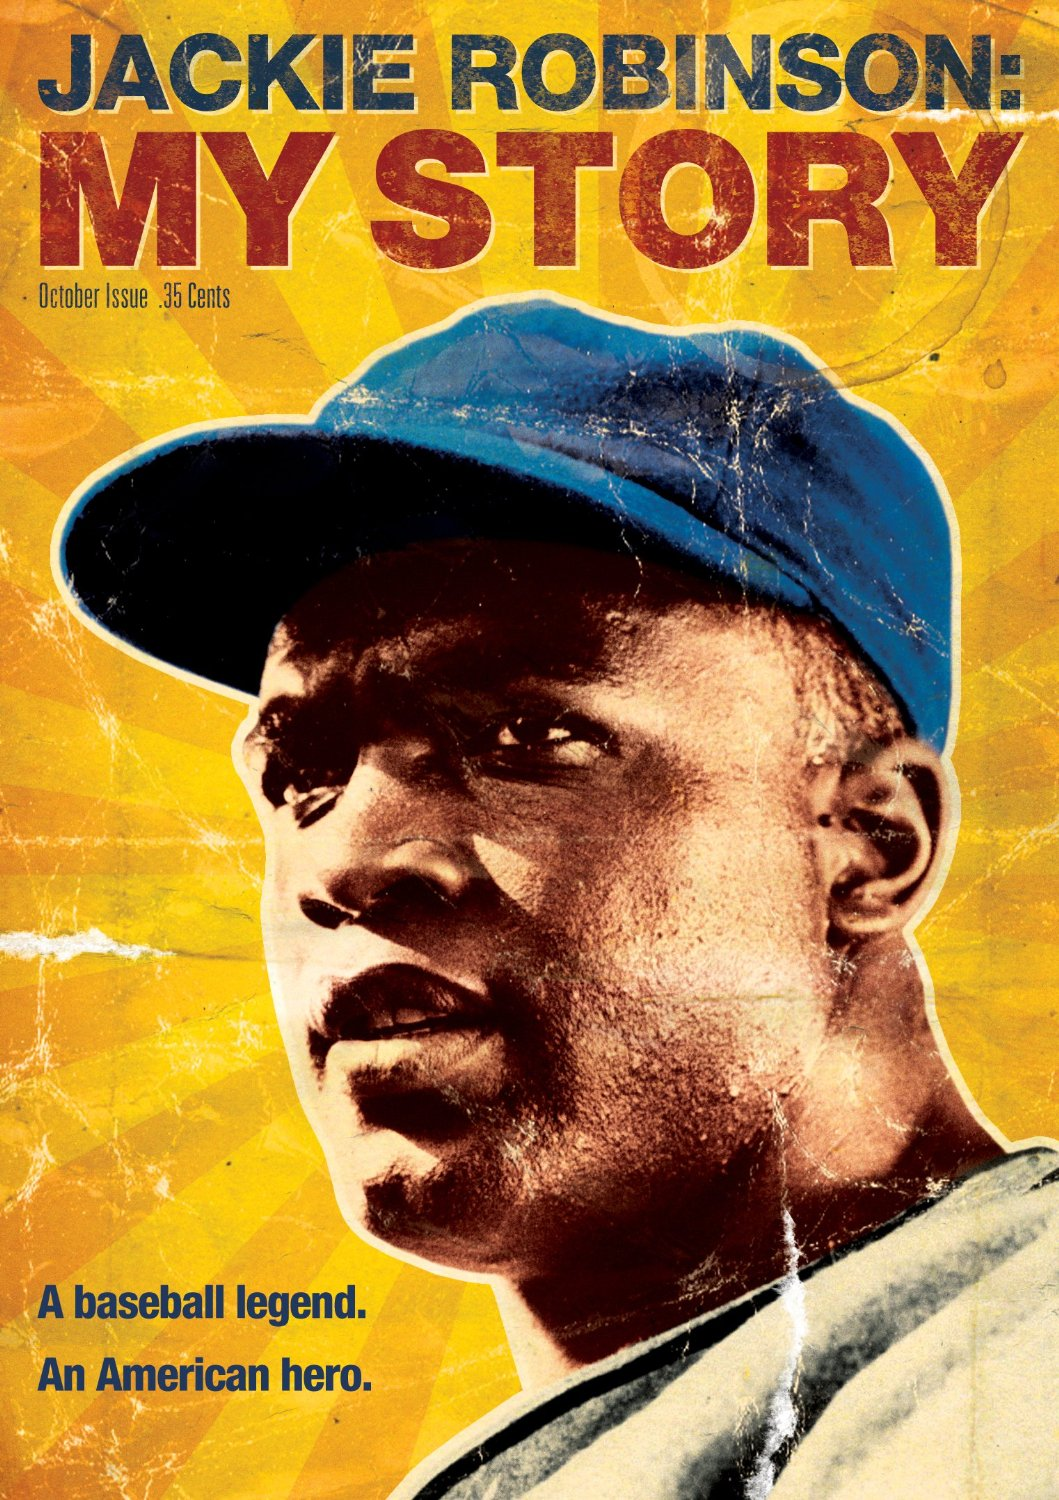 an introduction to the life and history of jackie robinson Jackie robinson biography jack roosevelt robinson was born in cairo, georgia in 1919 to a family of sharecroppers his mother, mallie robinson, single-handedly raised jackie and her four other children.